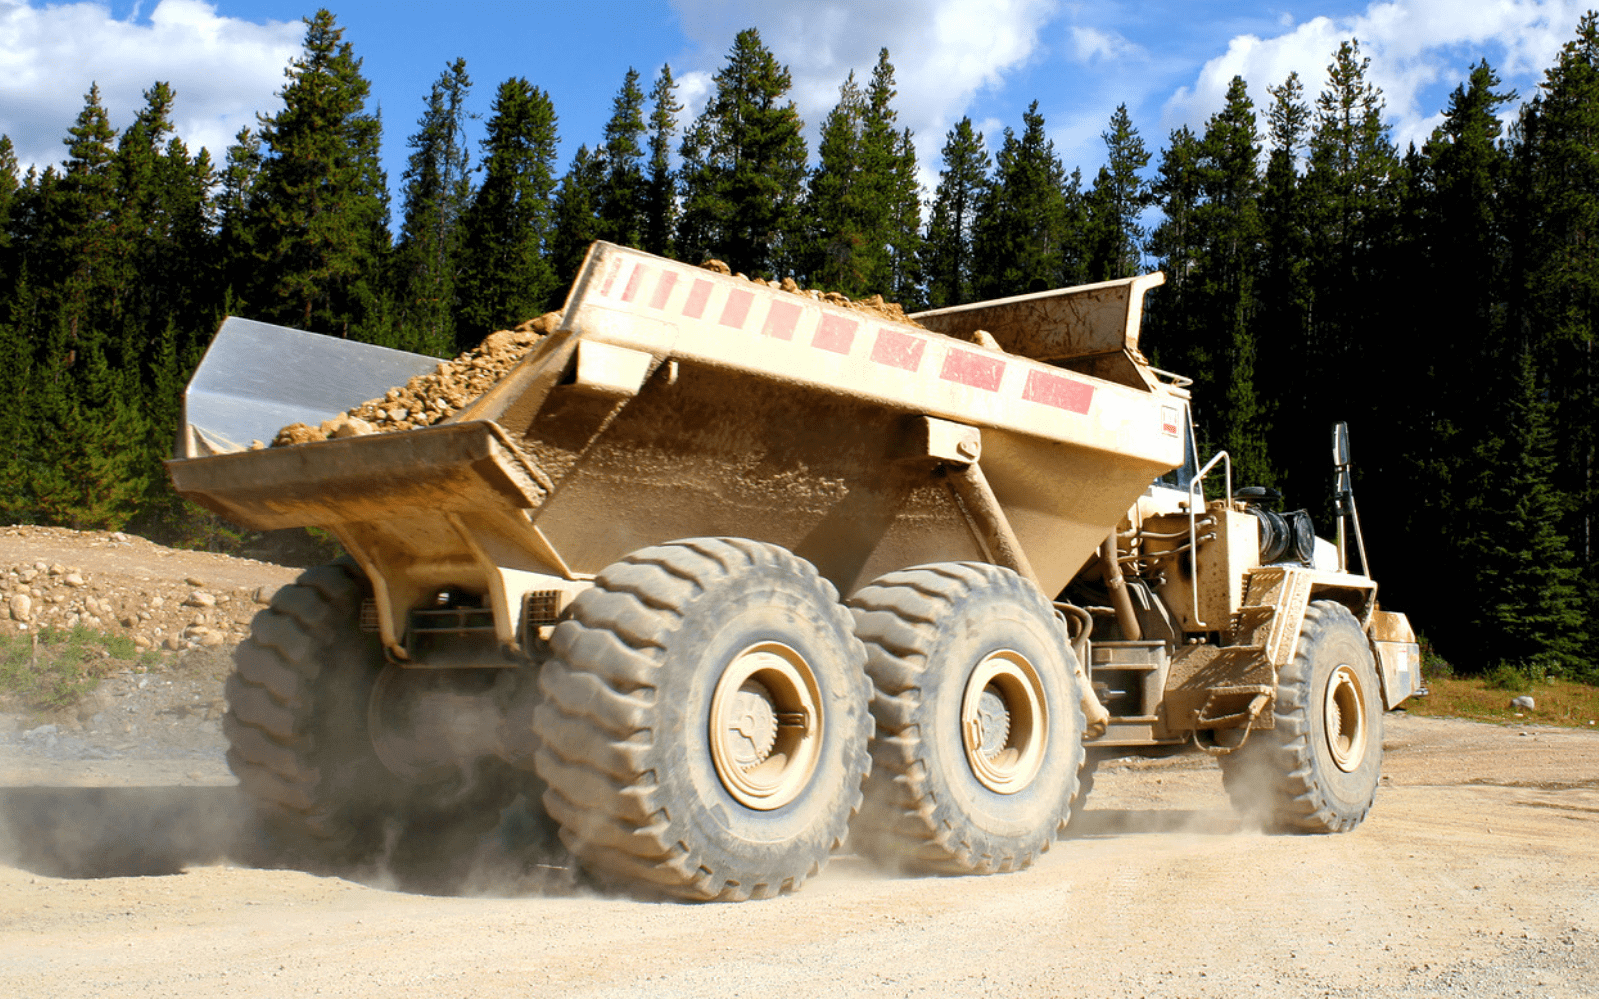 Industrial dump truck on site